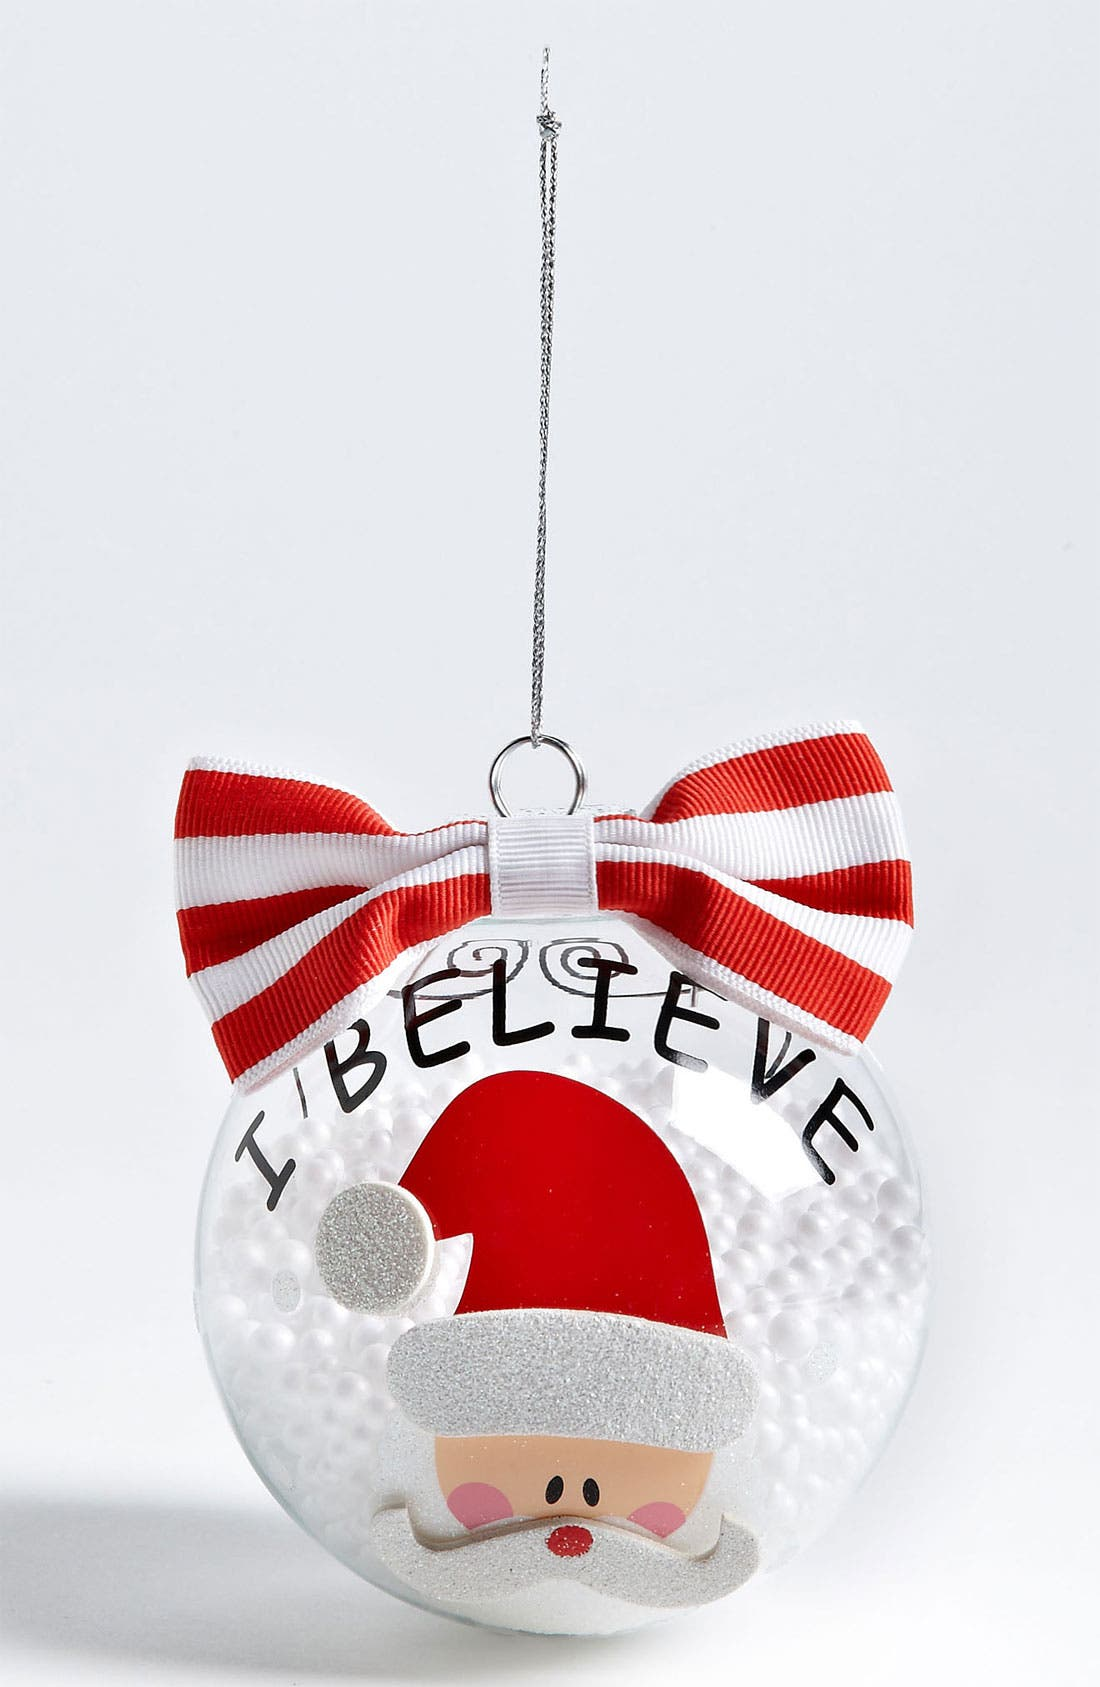 Alternate Image 1 Selected - Mud Pie 'I Believe' Ornament